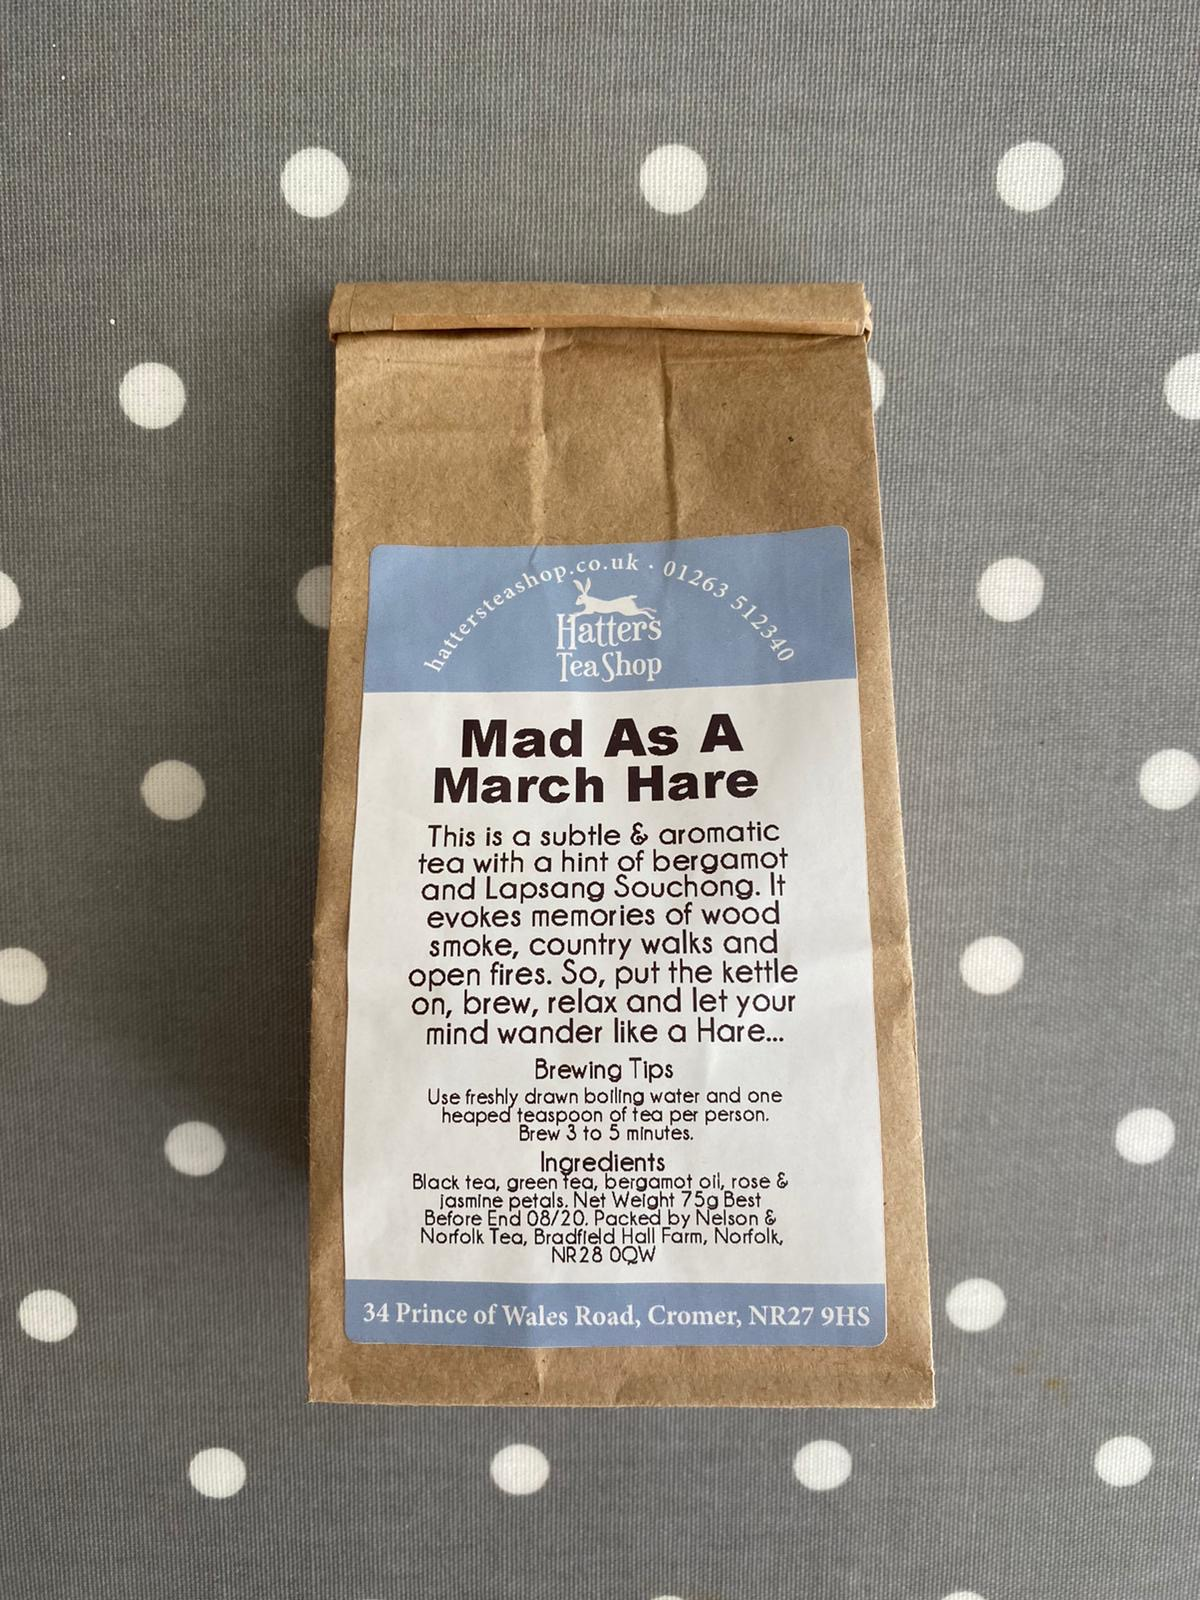 Hatters Loose Leaf Tea - Mad as a March Hare